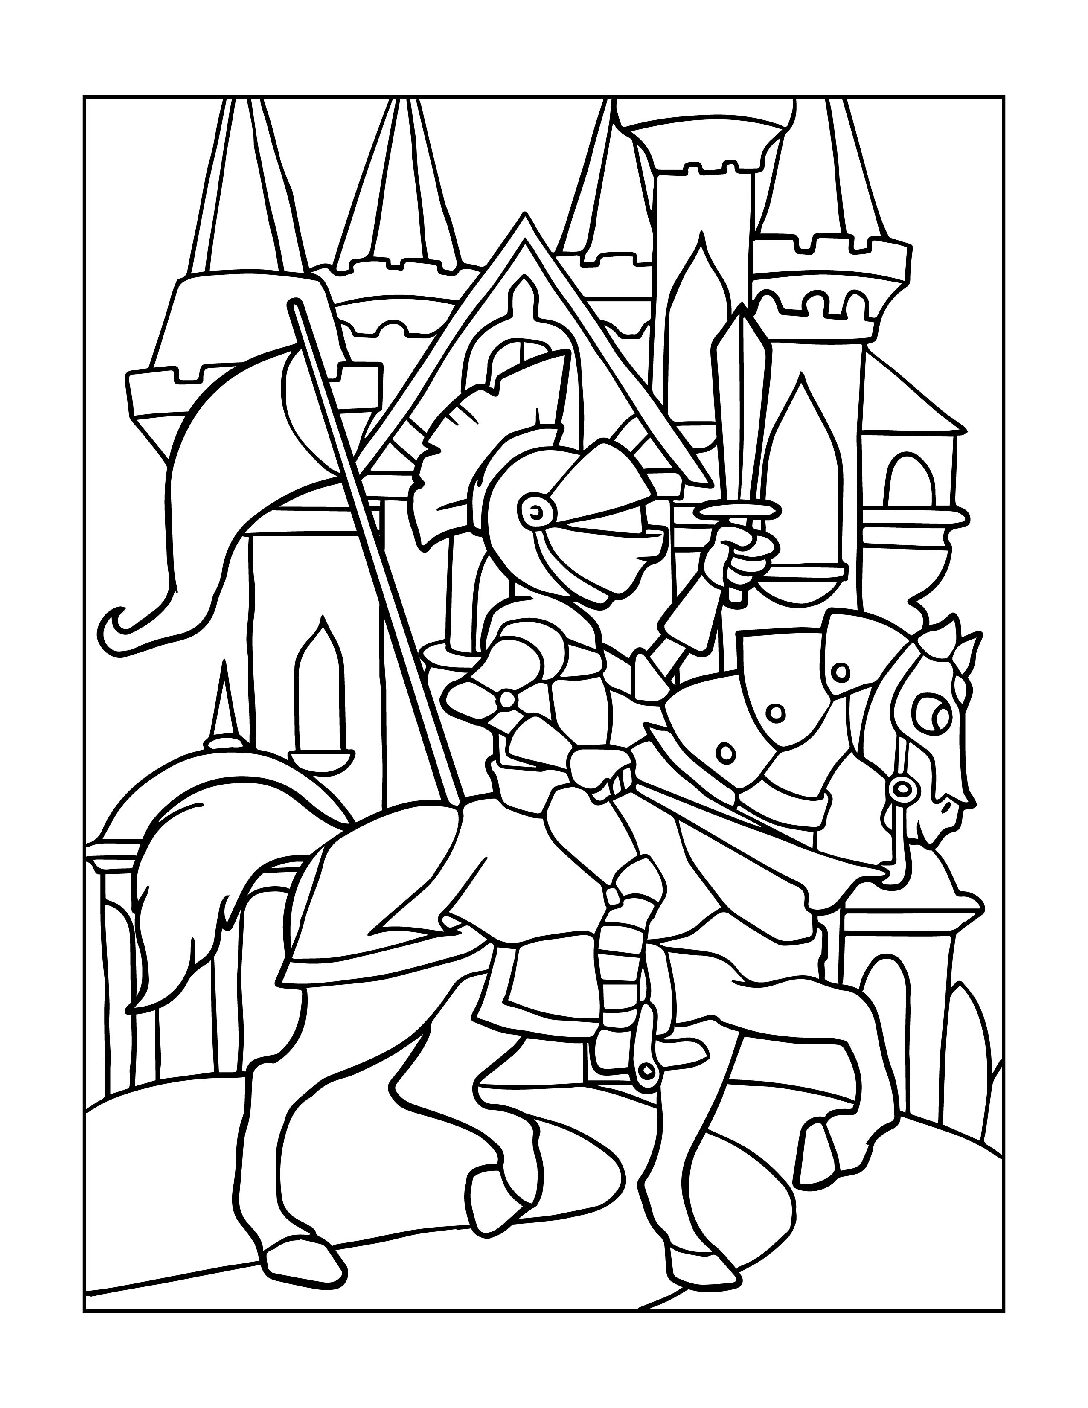 Coloring-Pages-Pirates-and-Knights-for-Boys-12-01-pdf Free Printable Pirates &  Knights Colouring Pages